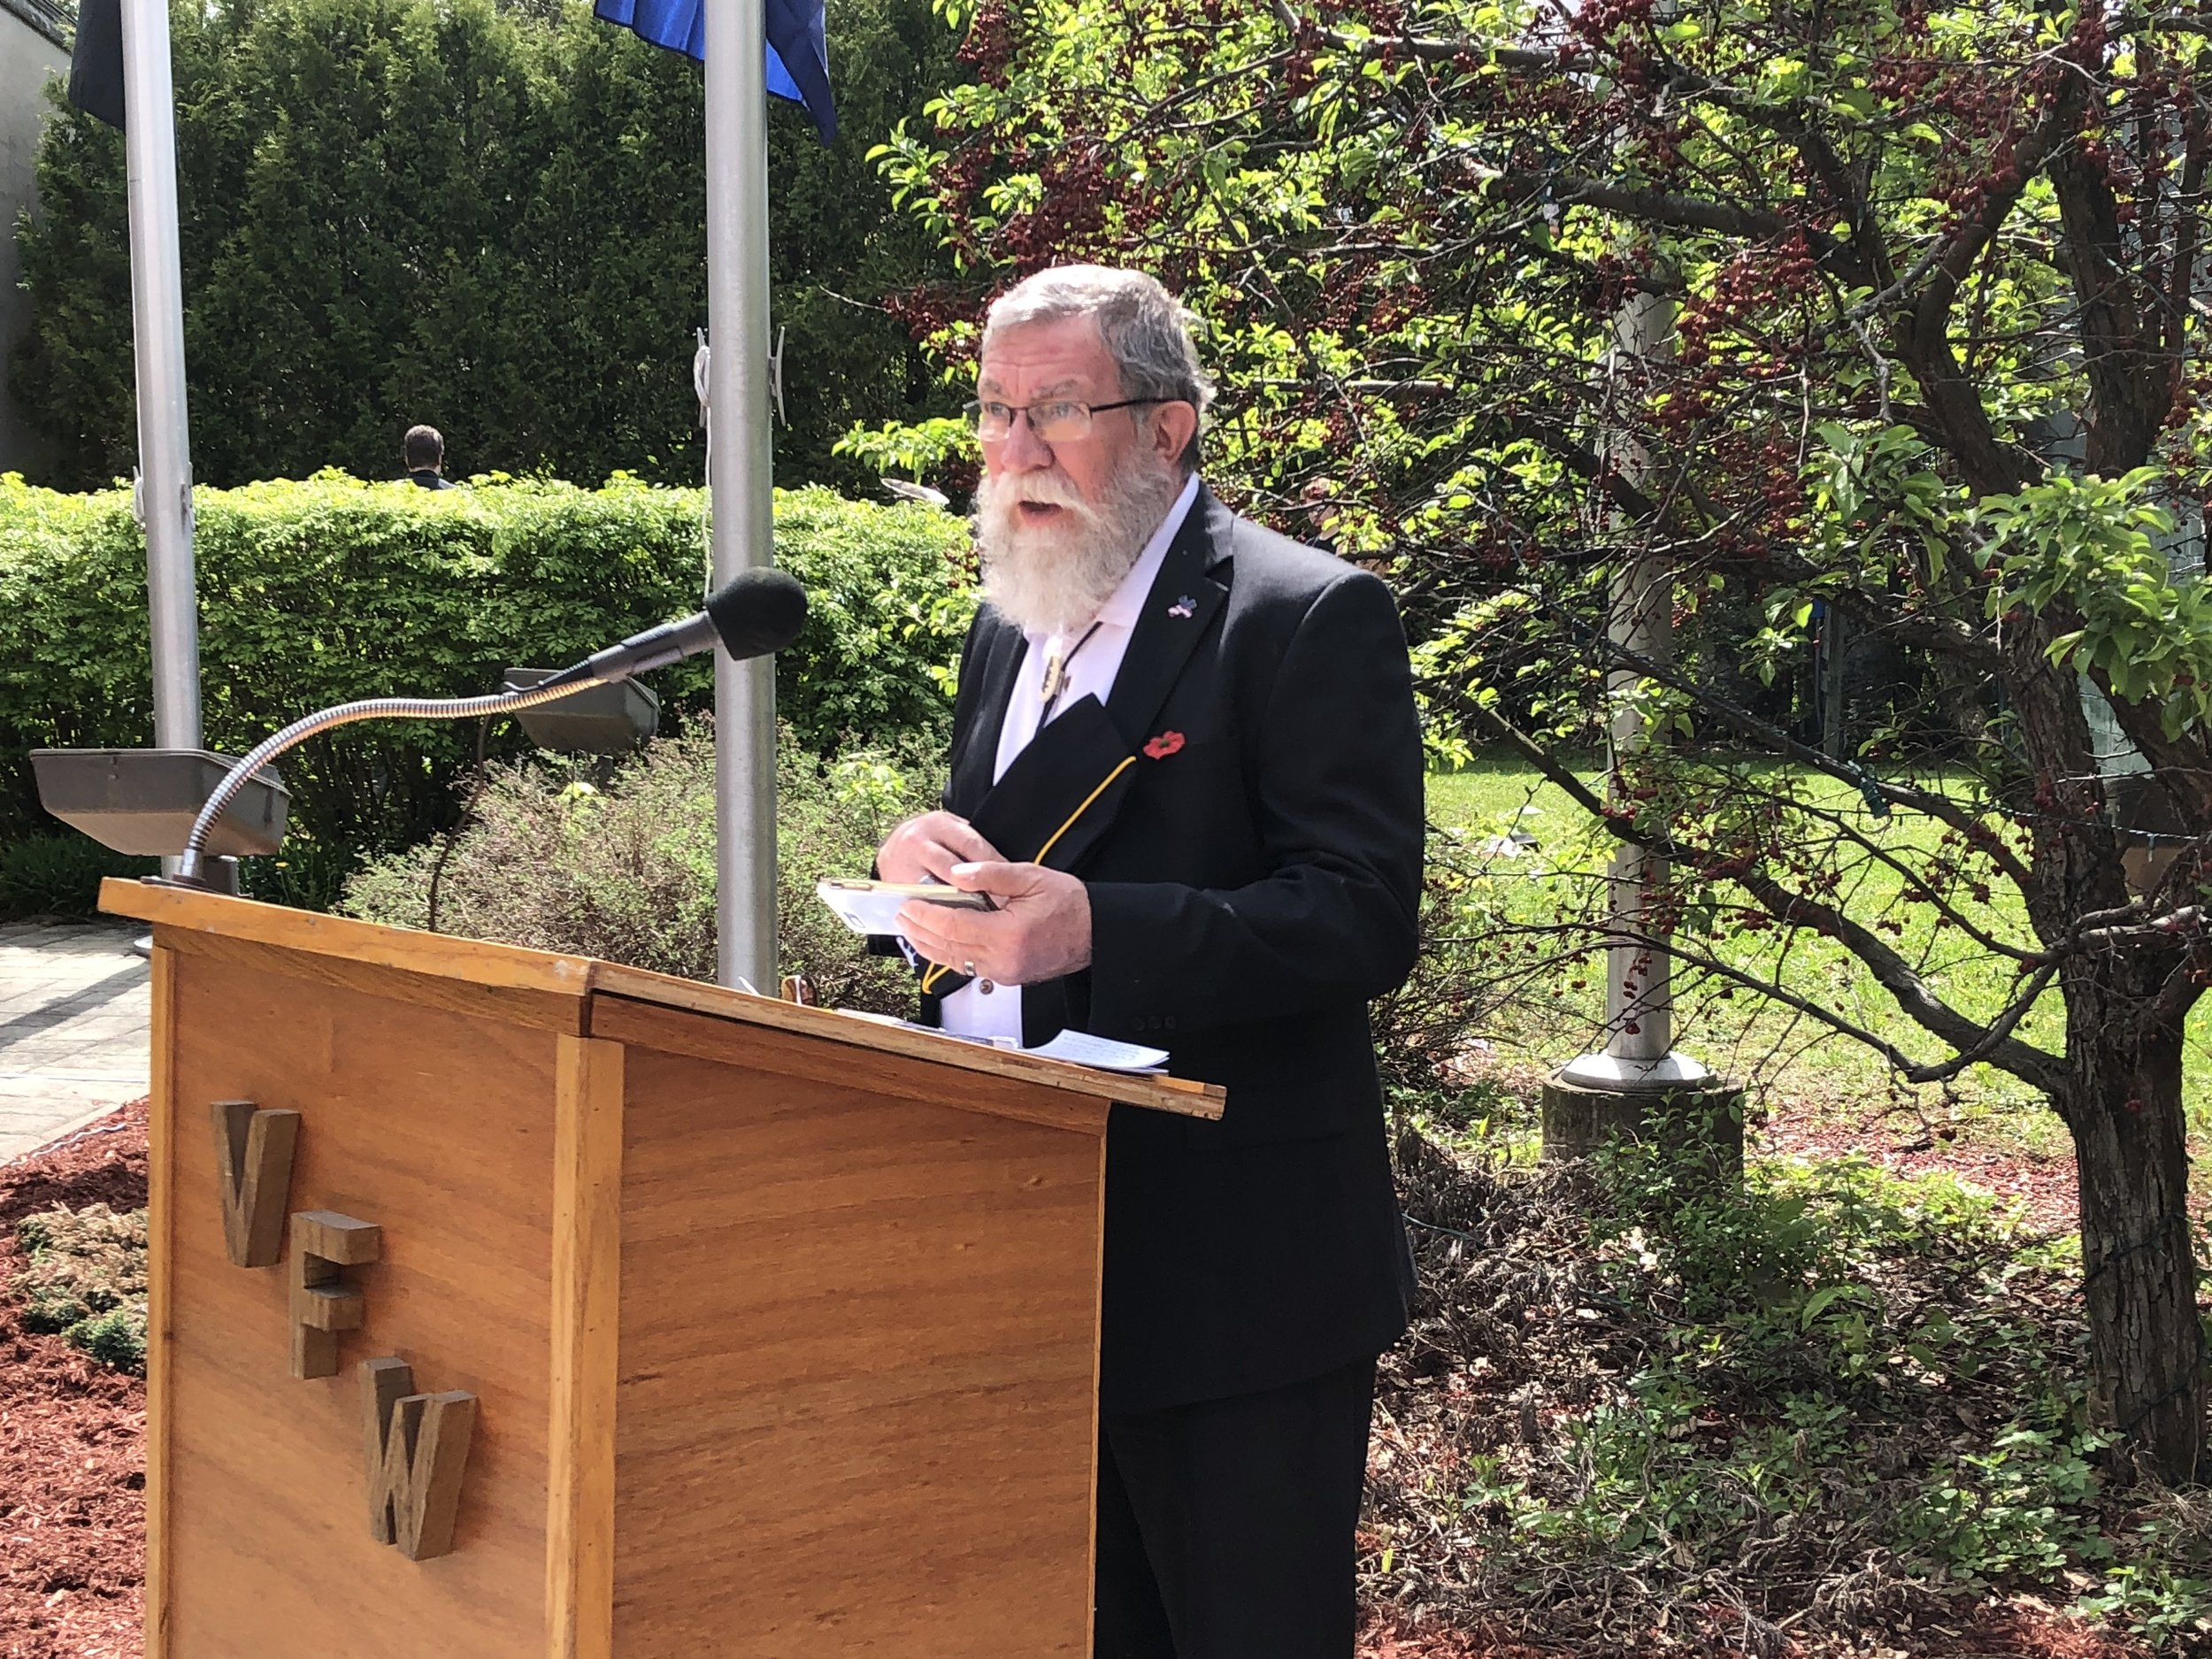 The Reverend Rick Wilburn delivered the opening prayer, asking the Lord's blessing for all those who gave their lives for their country and their families.